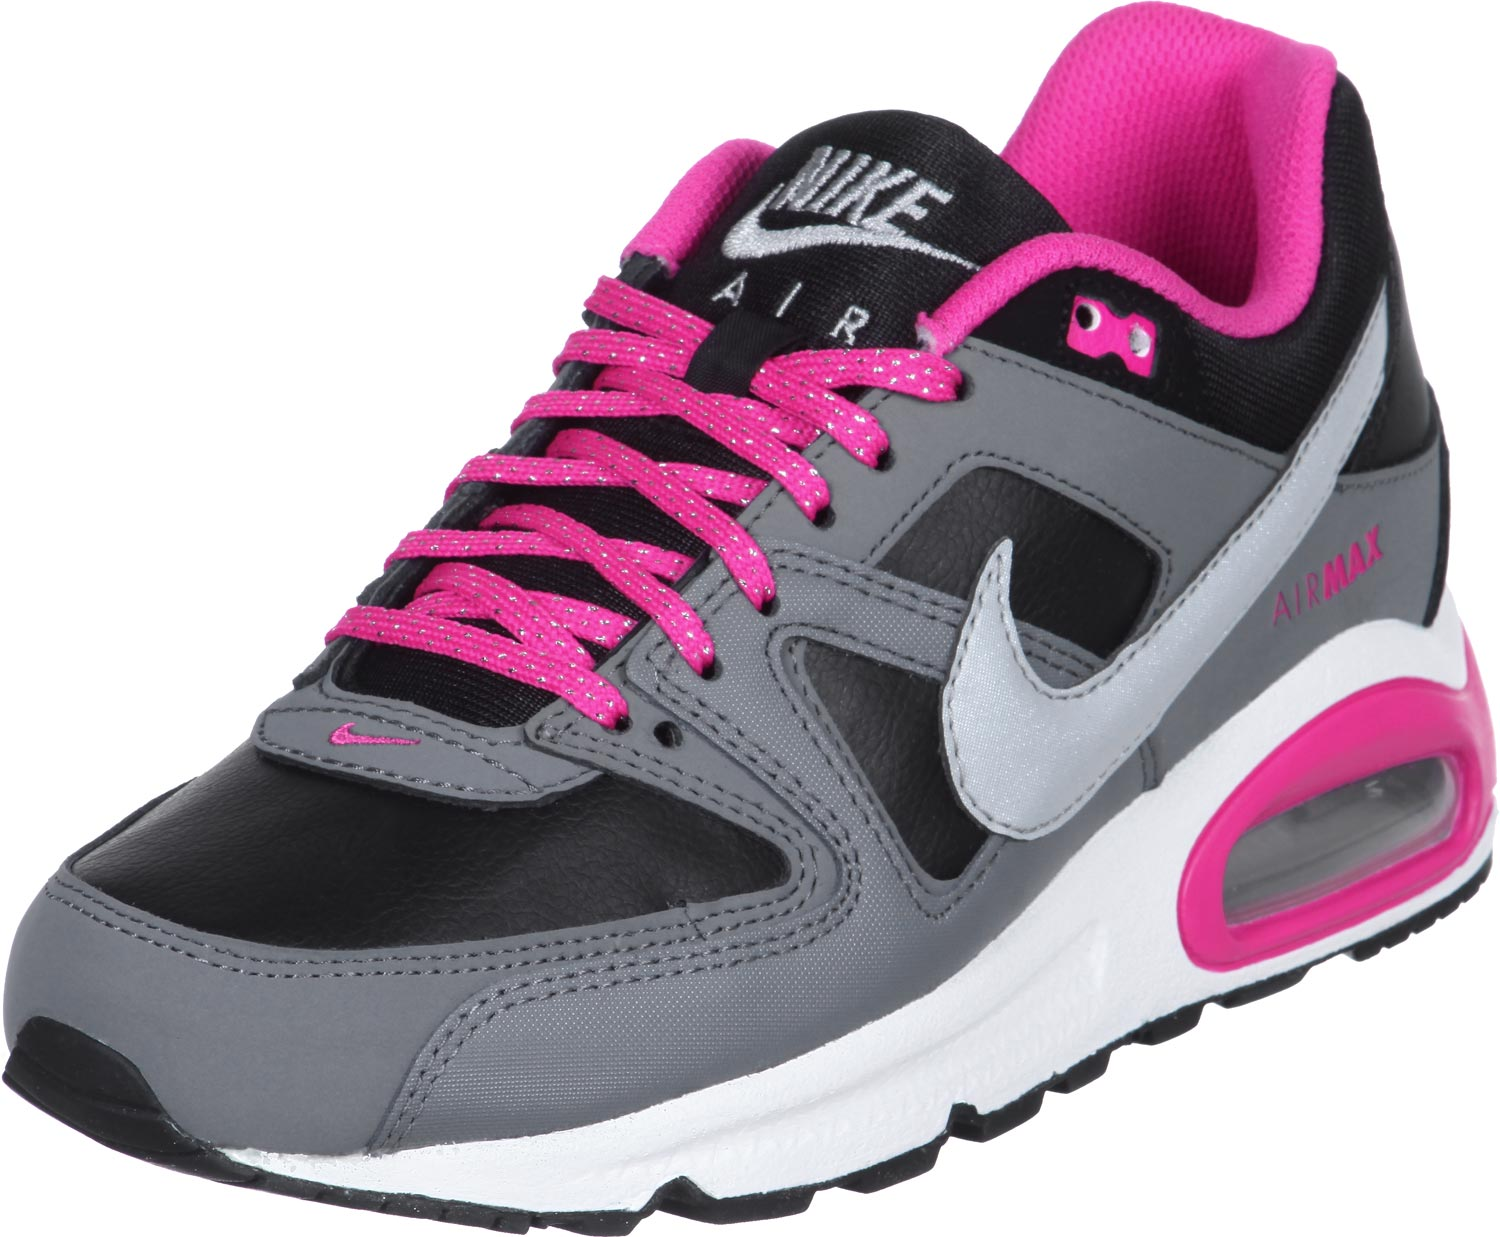 Nike Air Max Command Femme Officiel Atelier  [9875796]